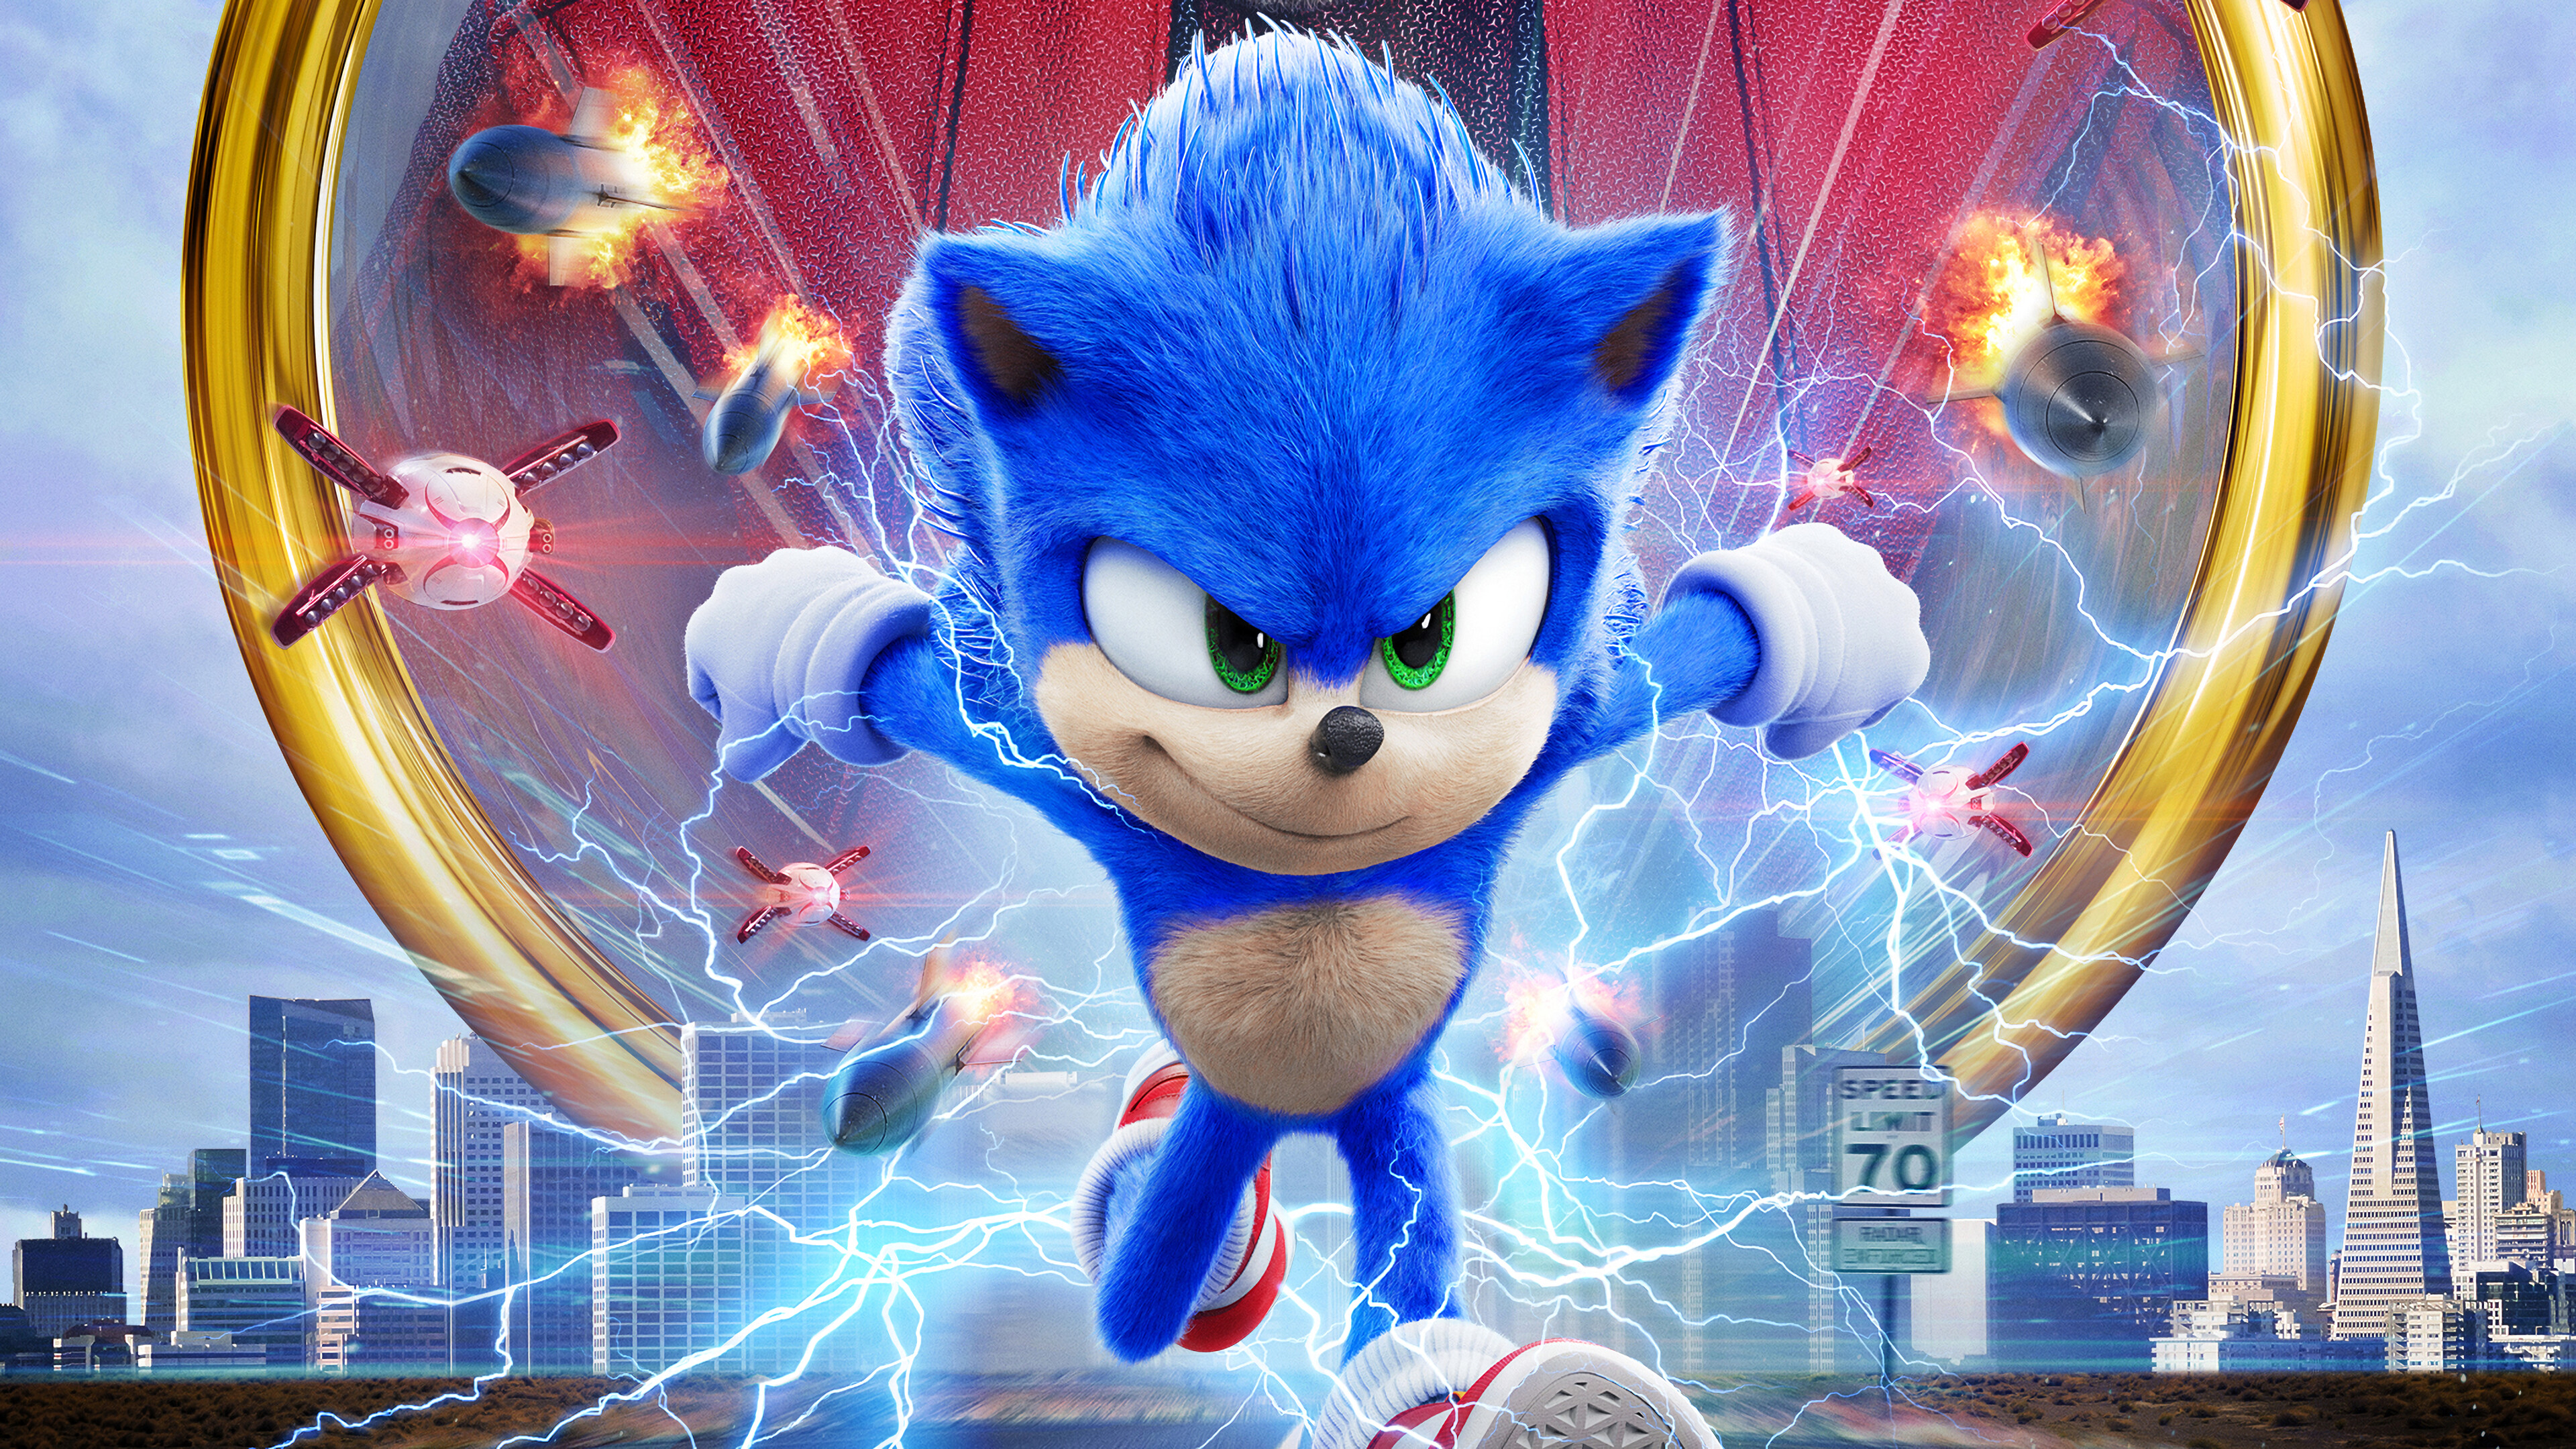 Sonic The Hedgehog Movie Poster Wallpaper 4k Ultra Hd Id 4063